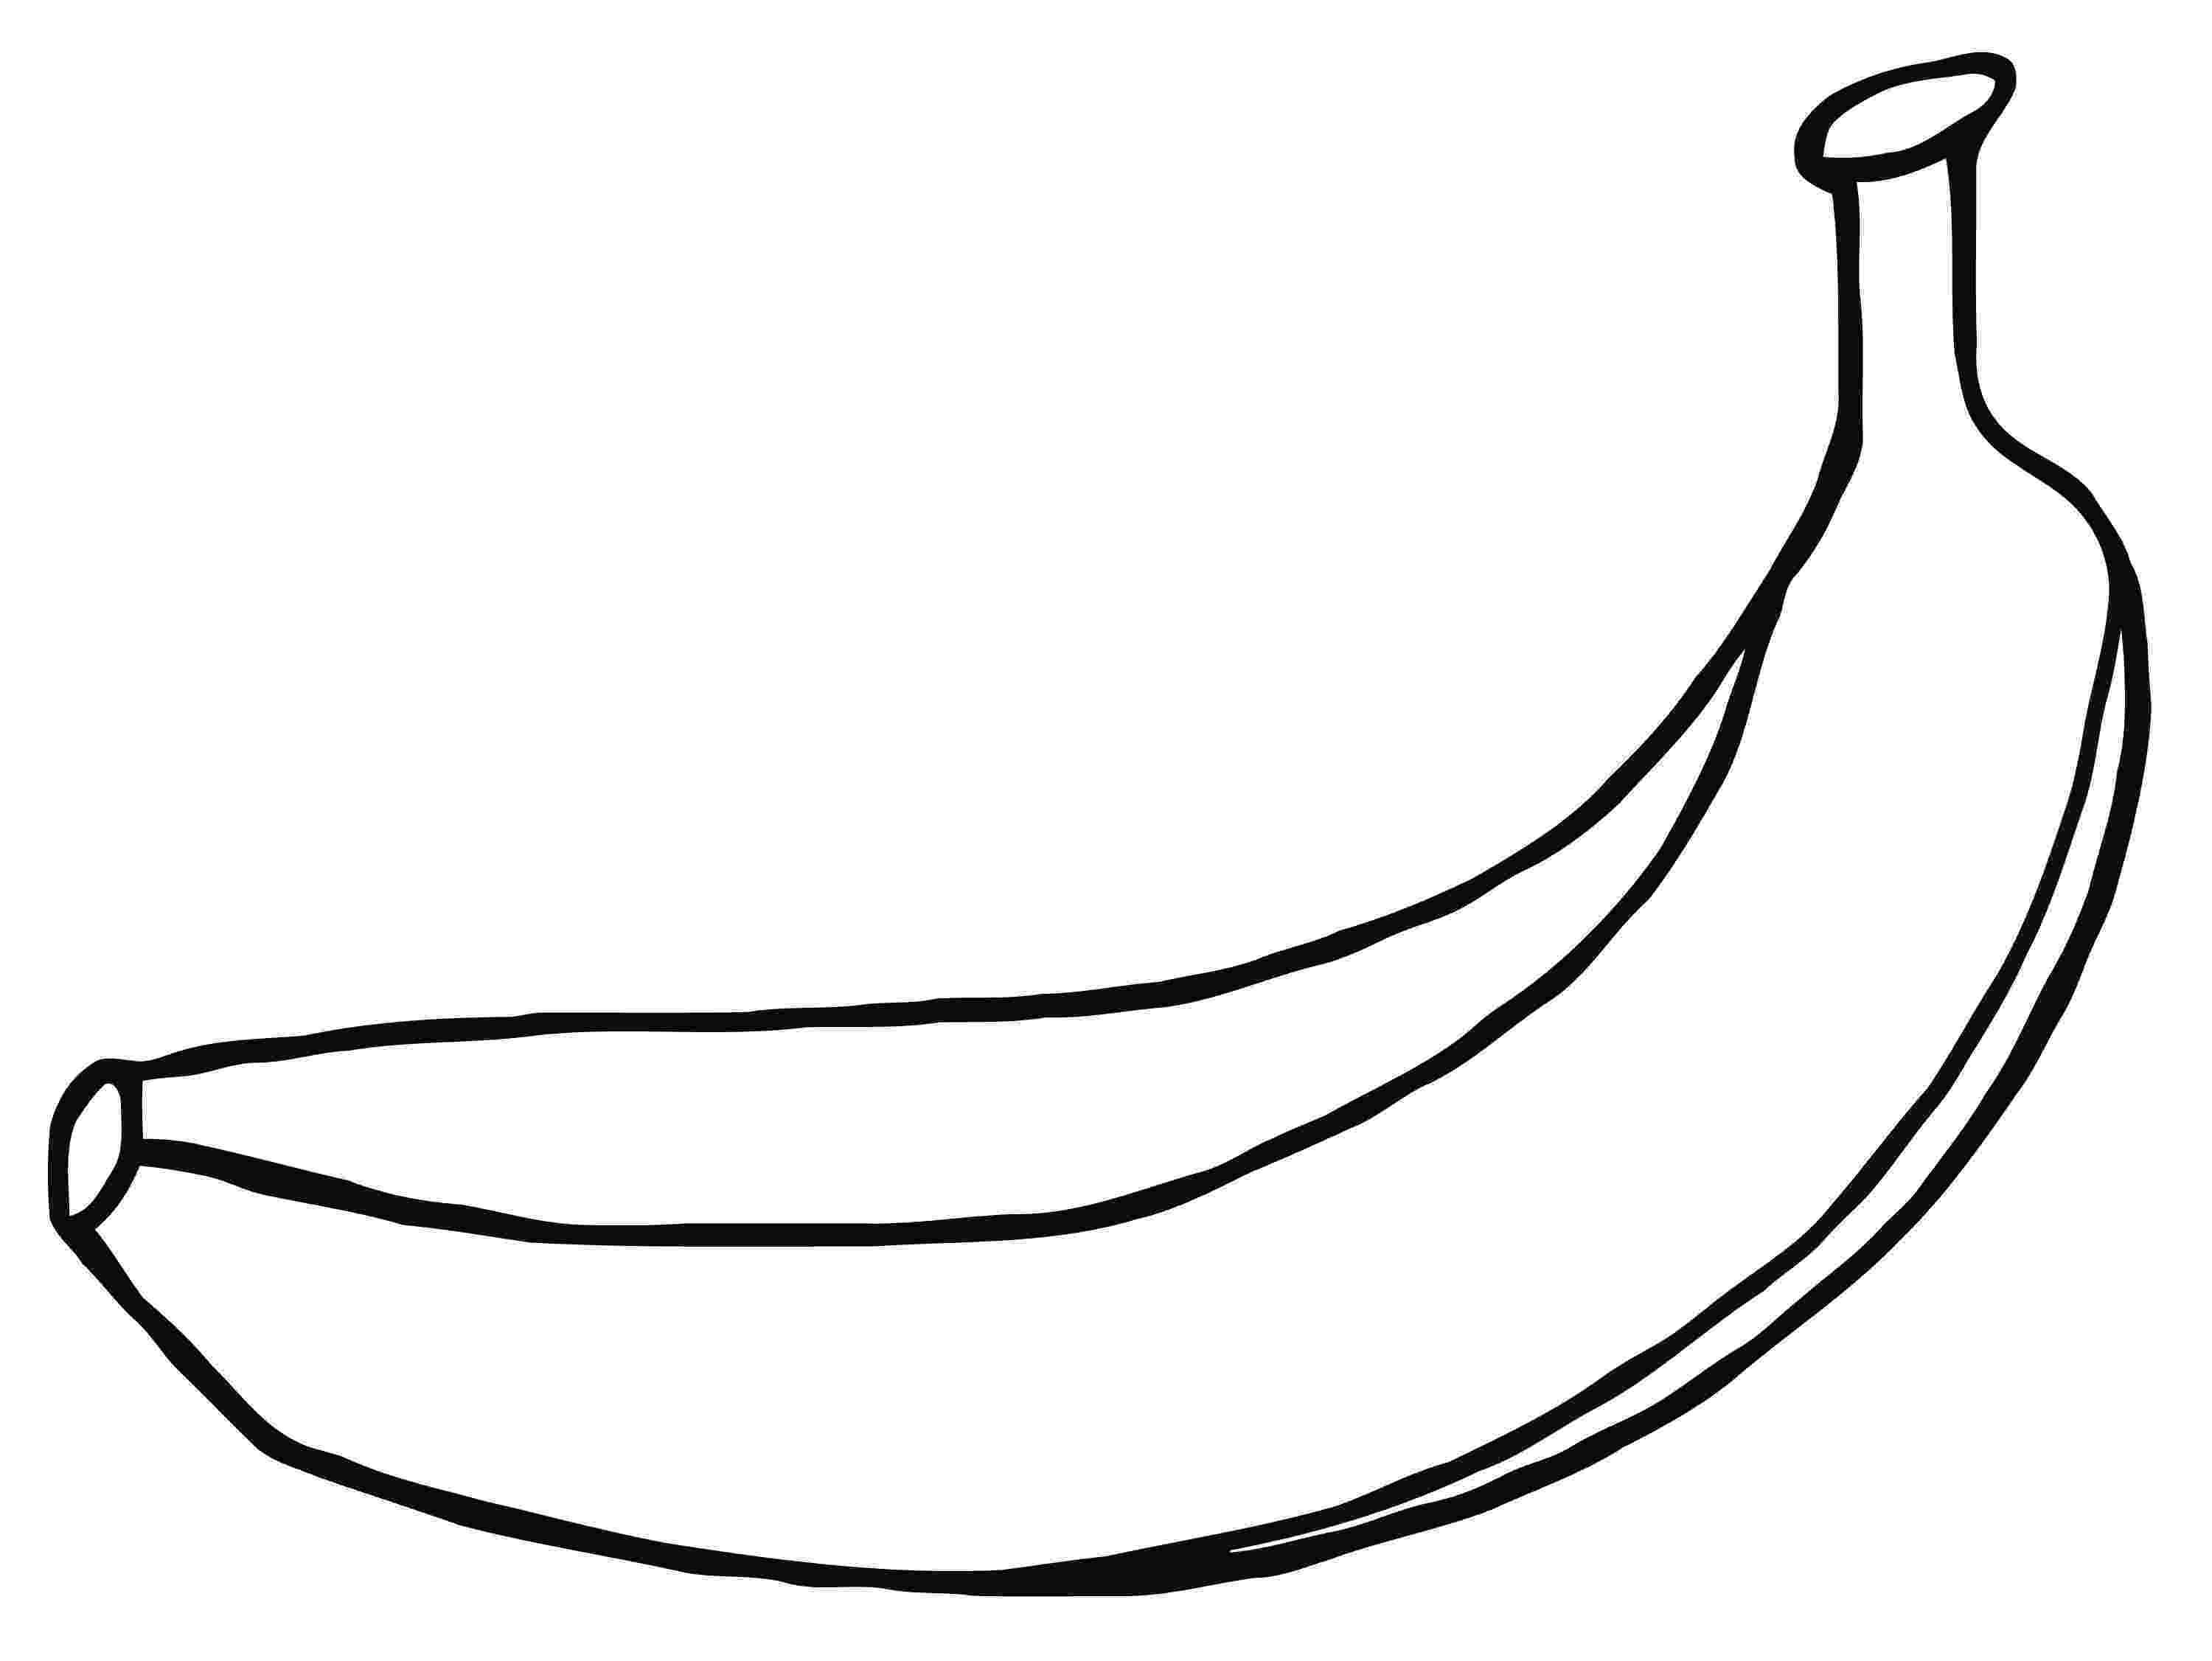 pictures of bananas to print banana clipart black and white free clipart images print pictures to of bananas